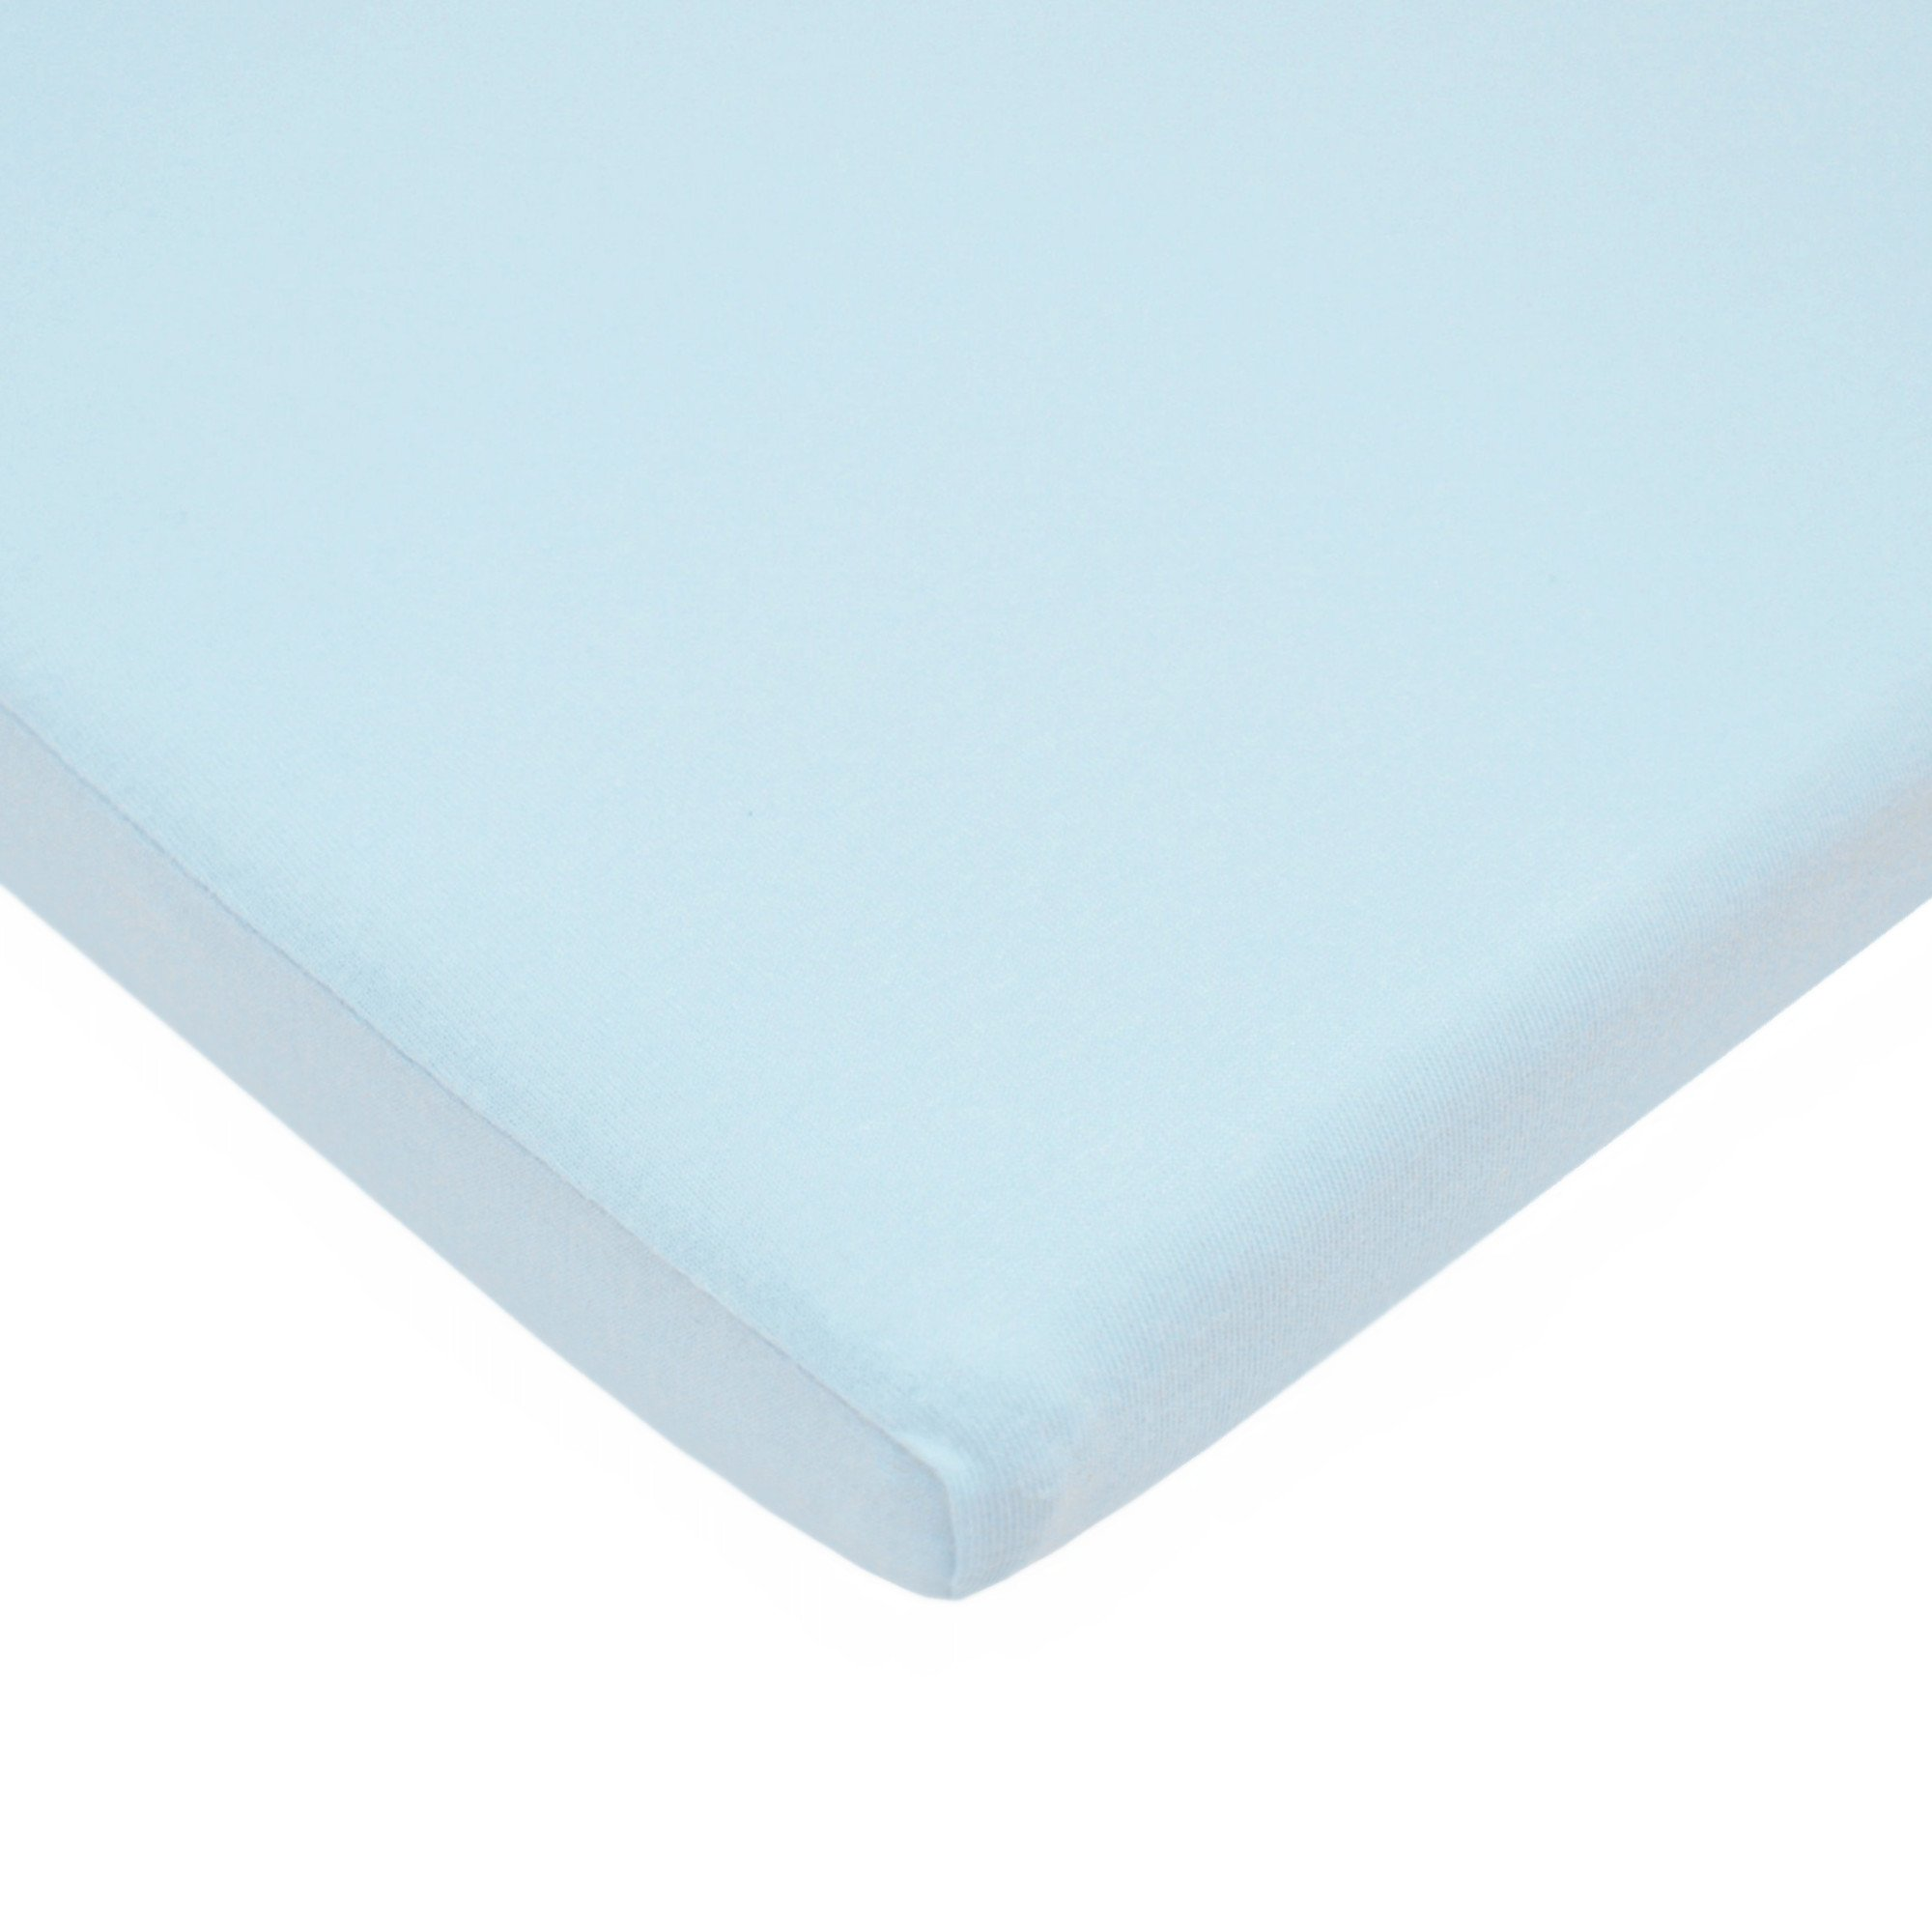 American Baby Company 100% Natural Cotton Supreme Jersey Knit Fitted Bassinet Sheet, Blue, Soft Breathable, for Boys and Girls